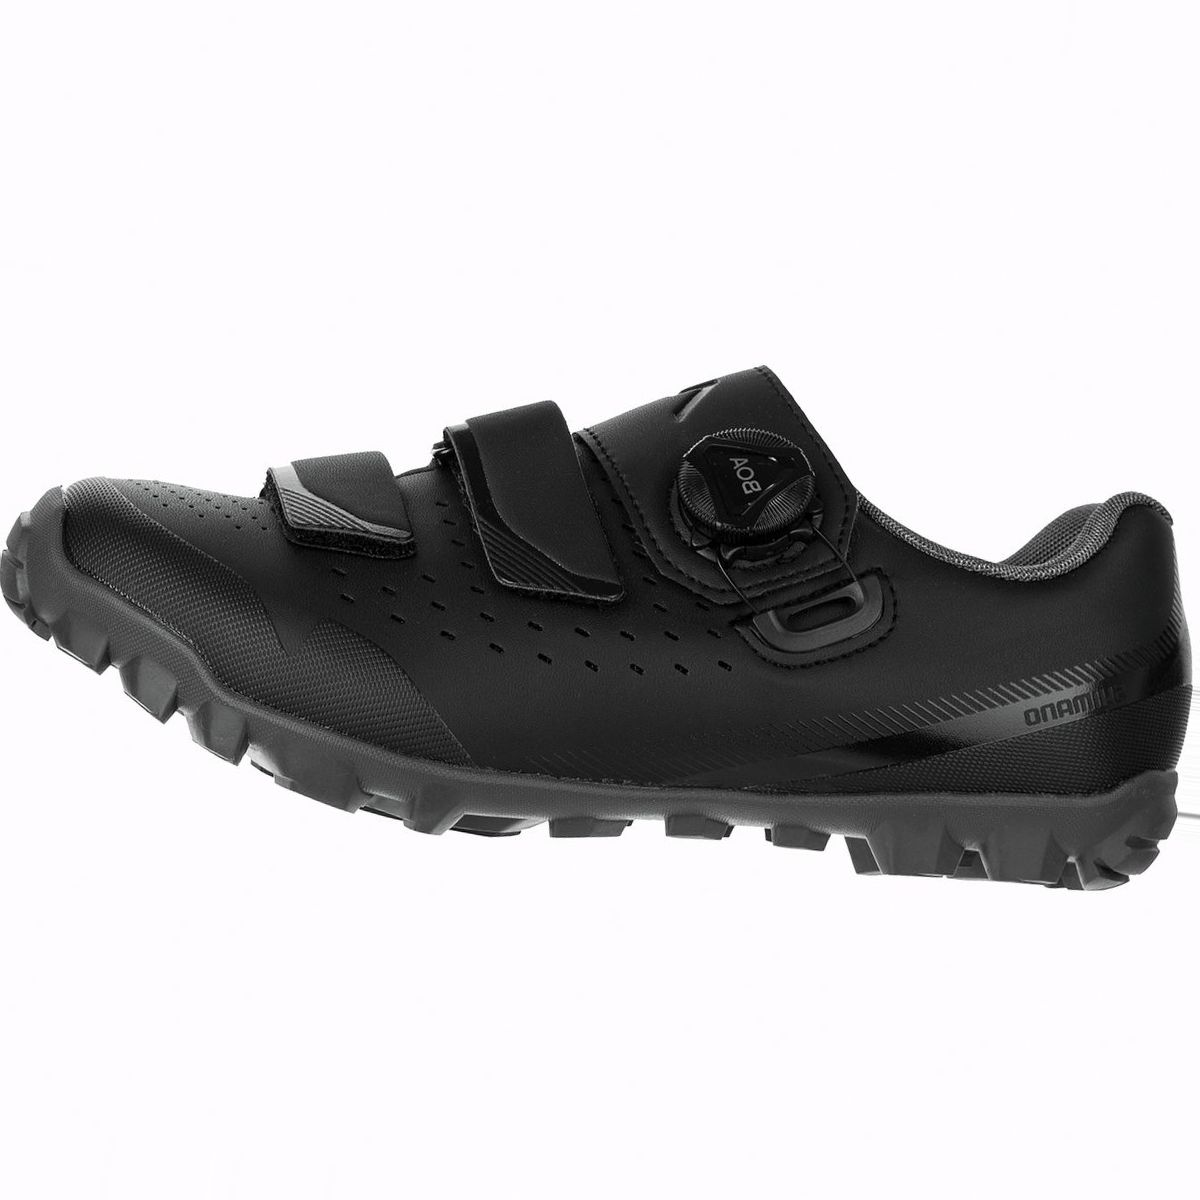 Shimano SH-ME4 Cycling Shoe - Women's